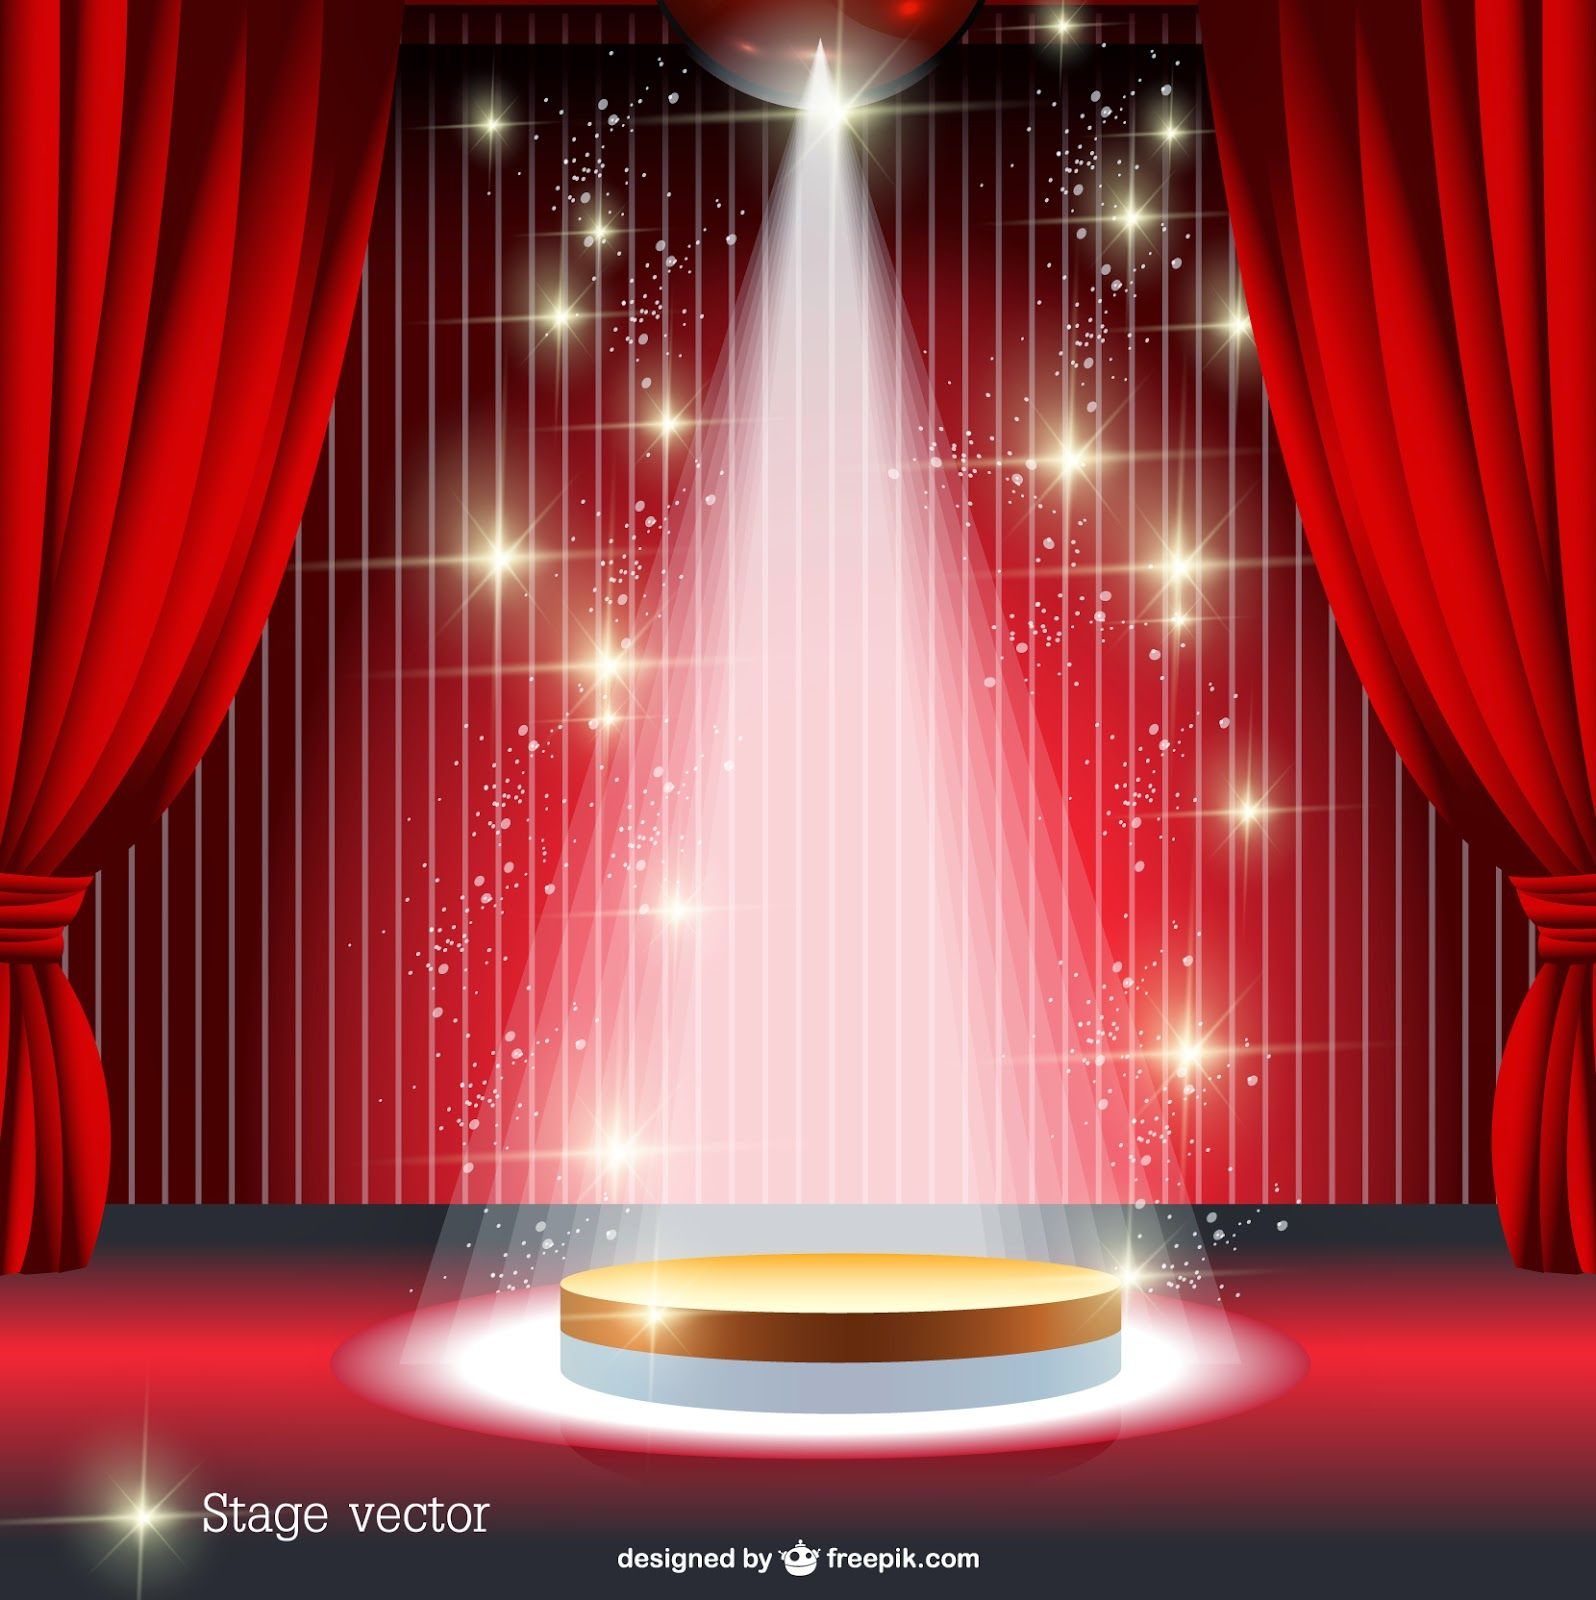 Stage curtains spotlight - Explore Red Curtains Yahoo Search And More